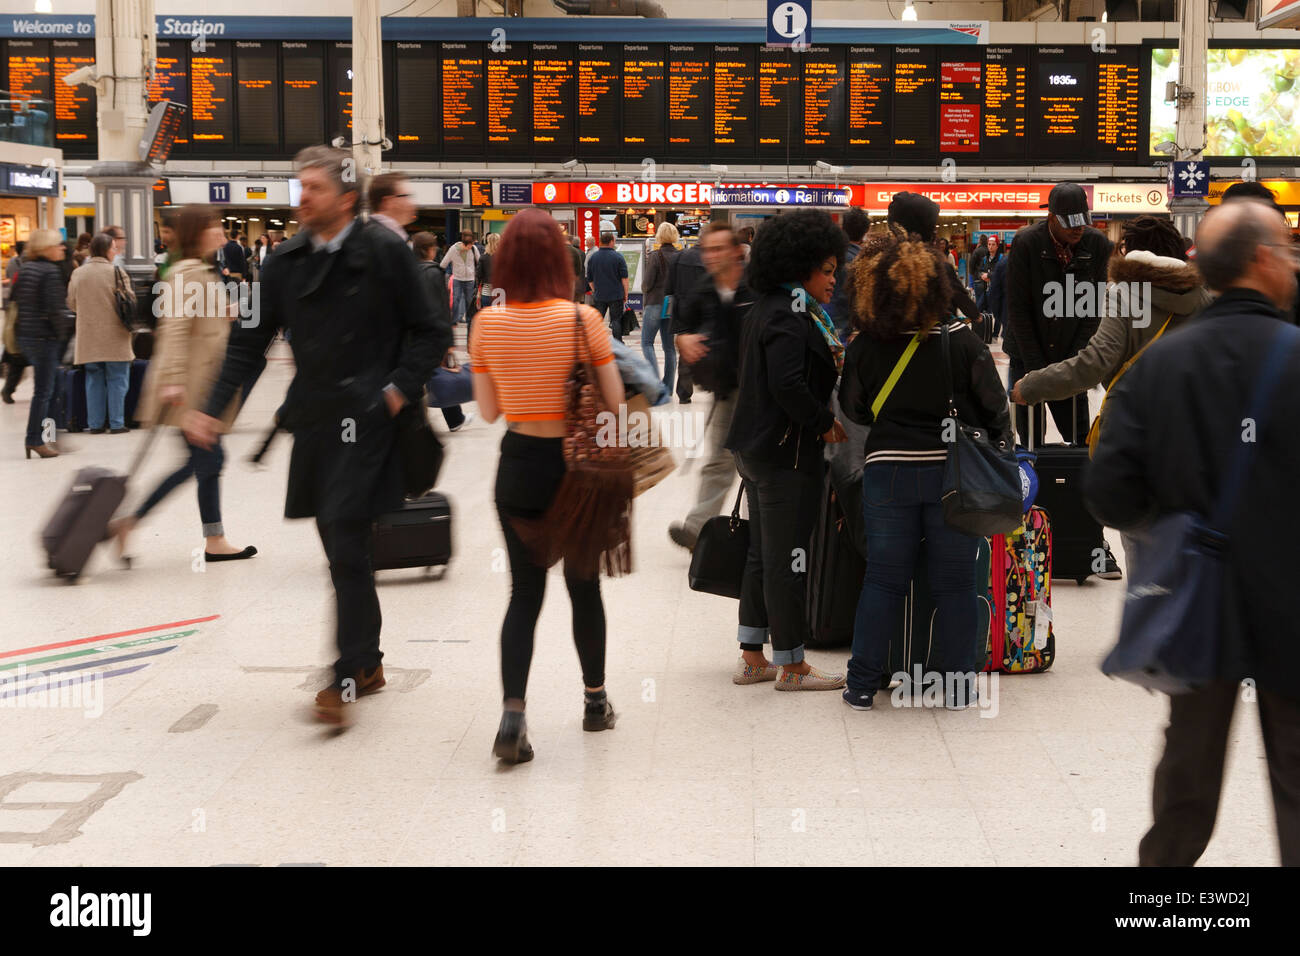 Group of people chatting at Victoria Station in rush hour. Passers buy showing motion blur. - Stock Image